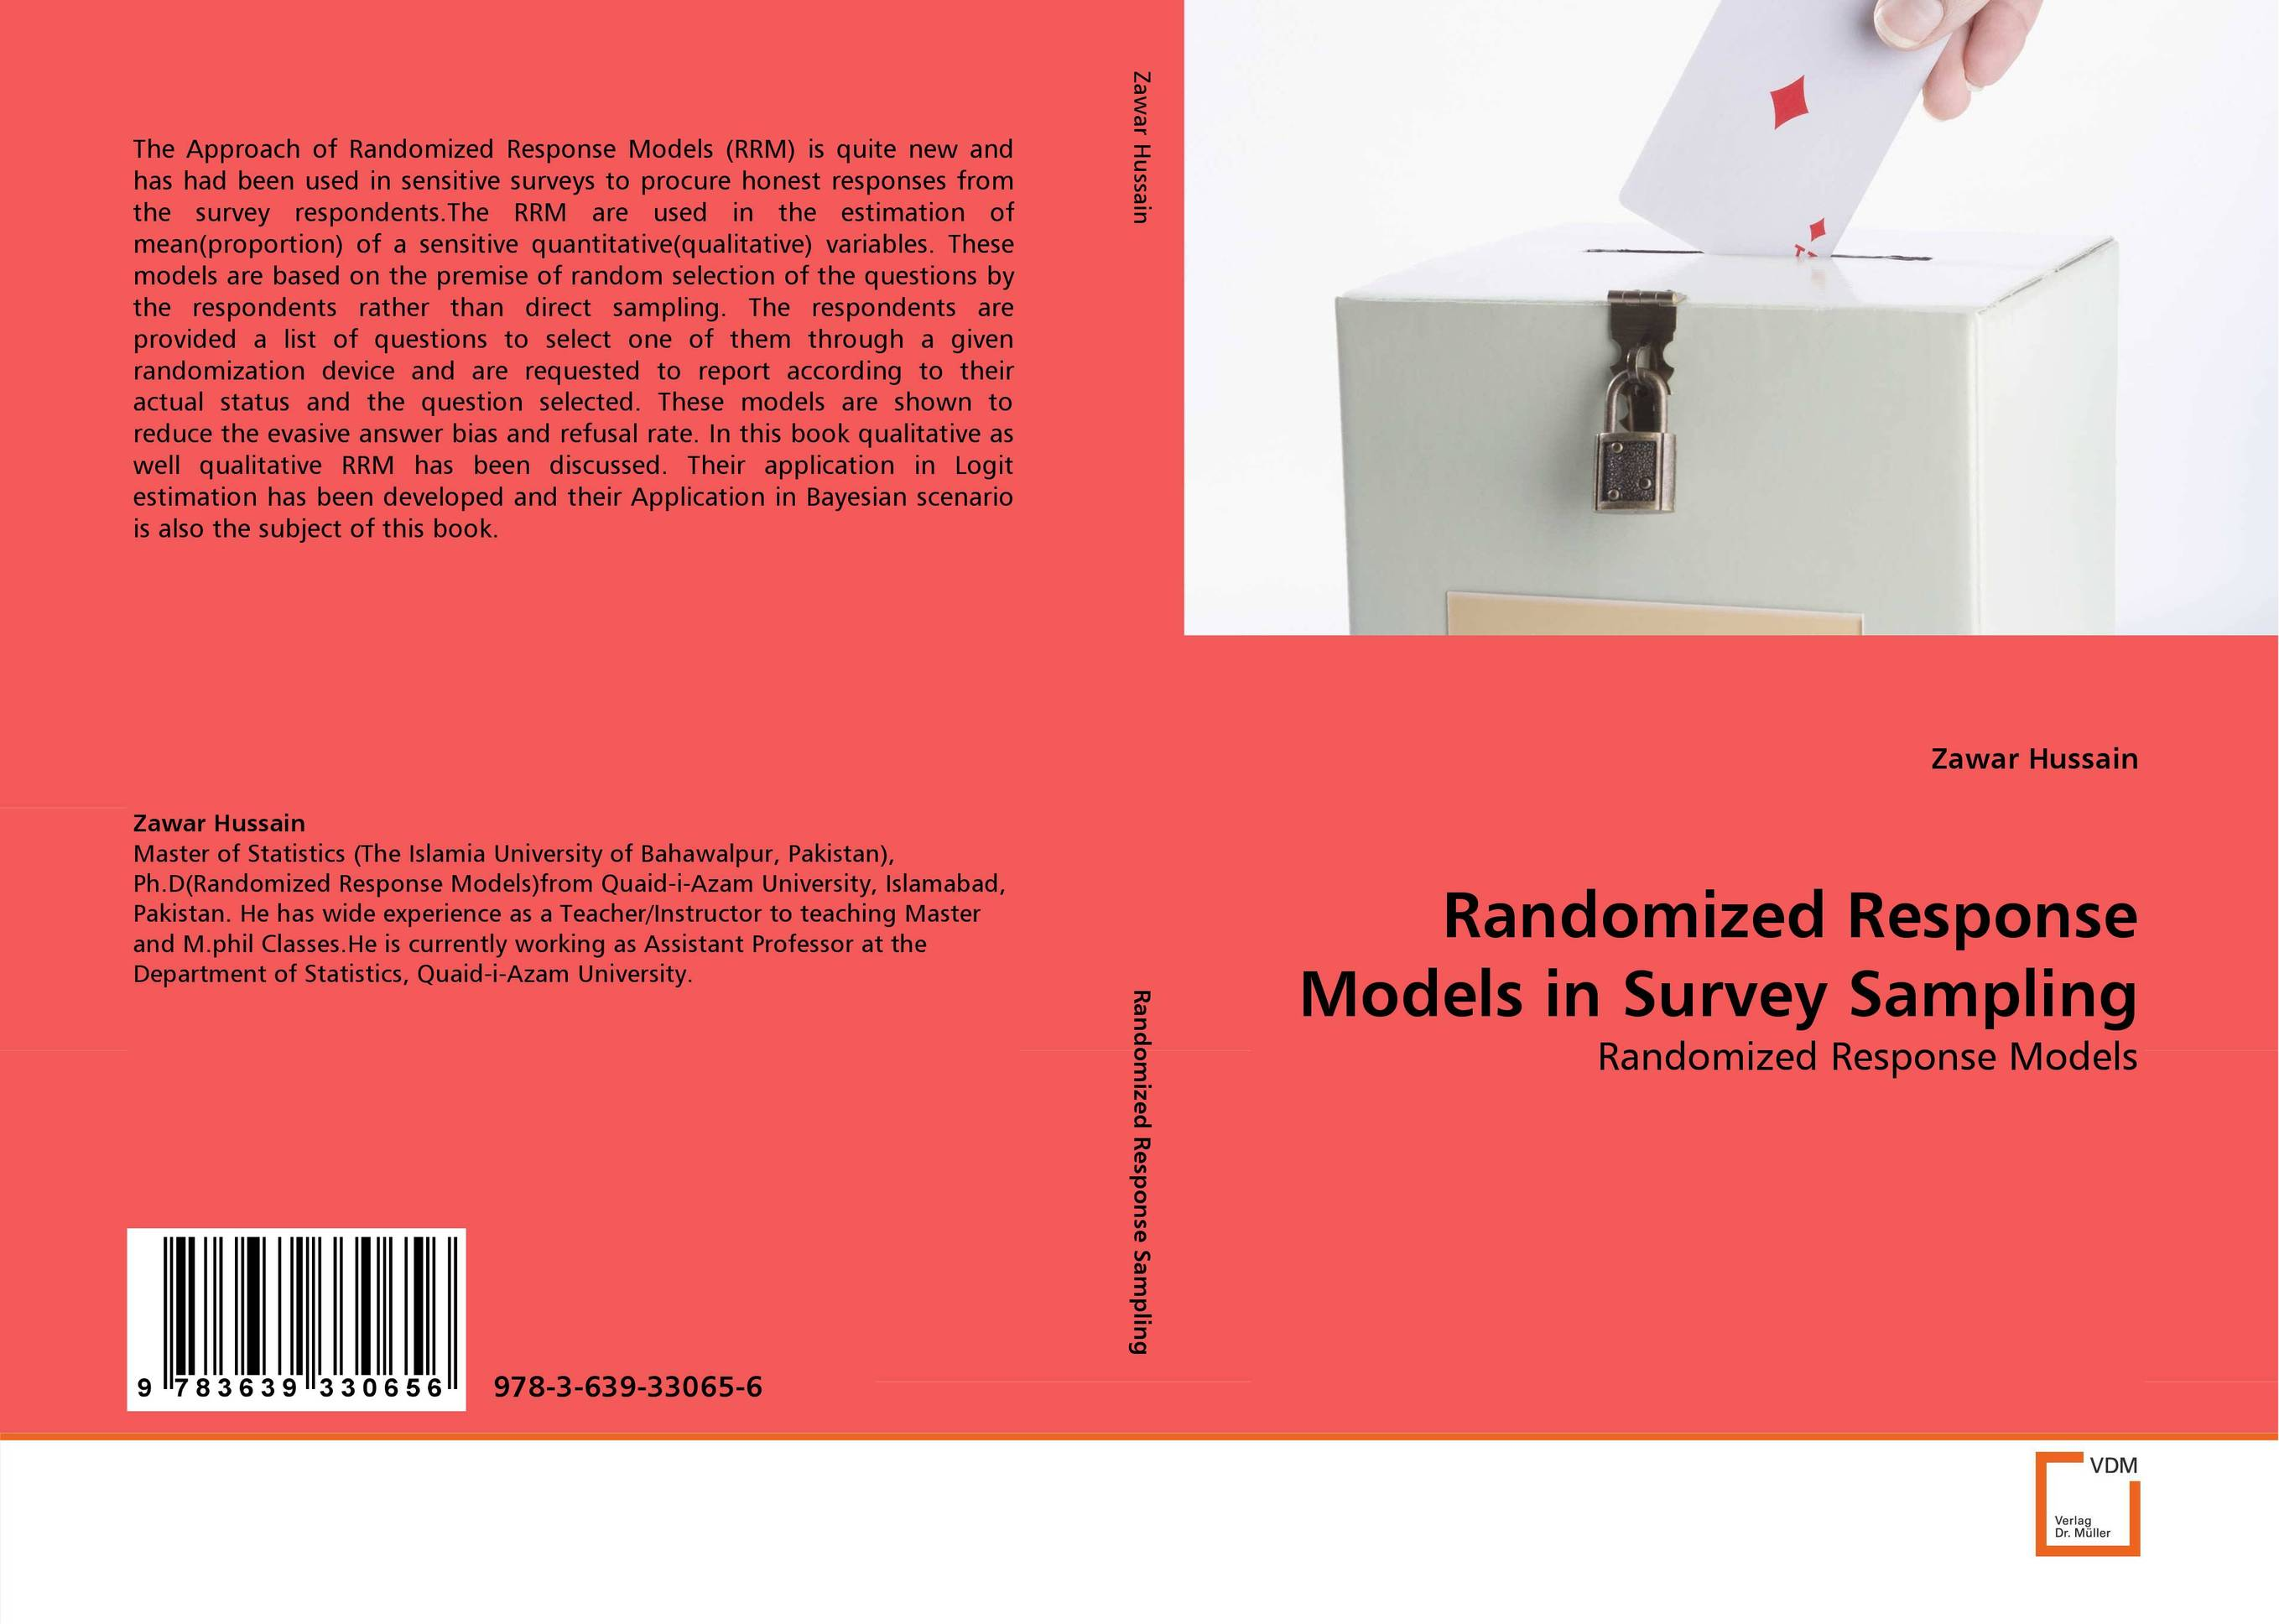 Randomized Response Models in Survey Sampling seunghwan shin and venky shankar selection bias and heterogeneity in severity models